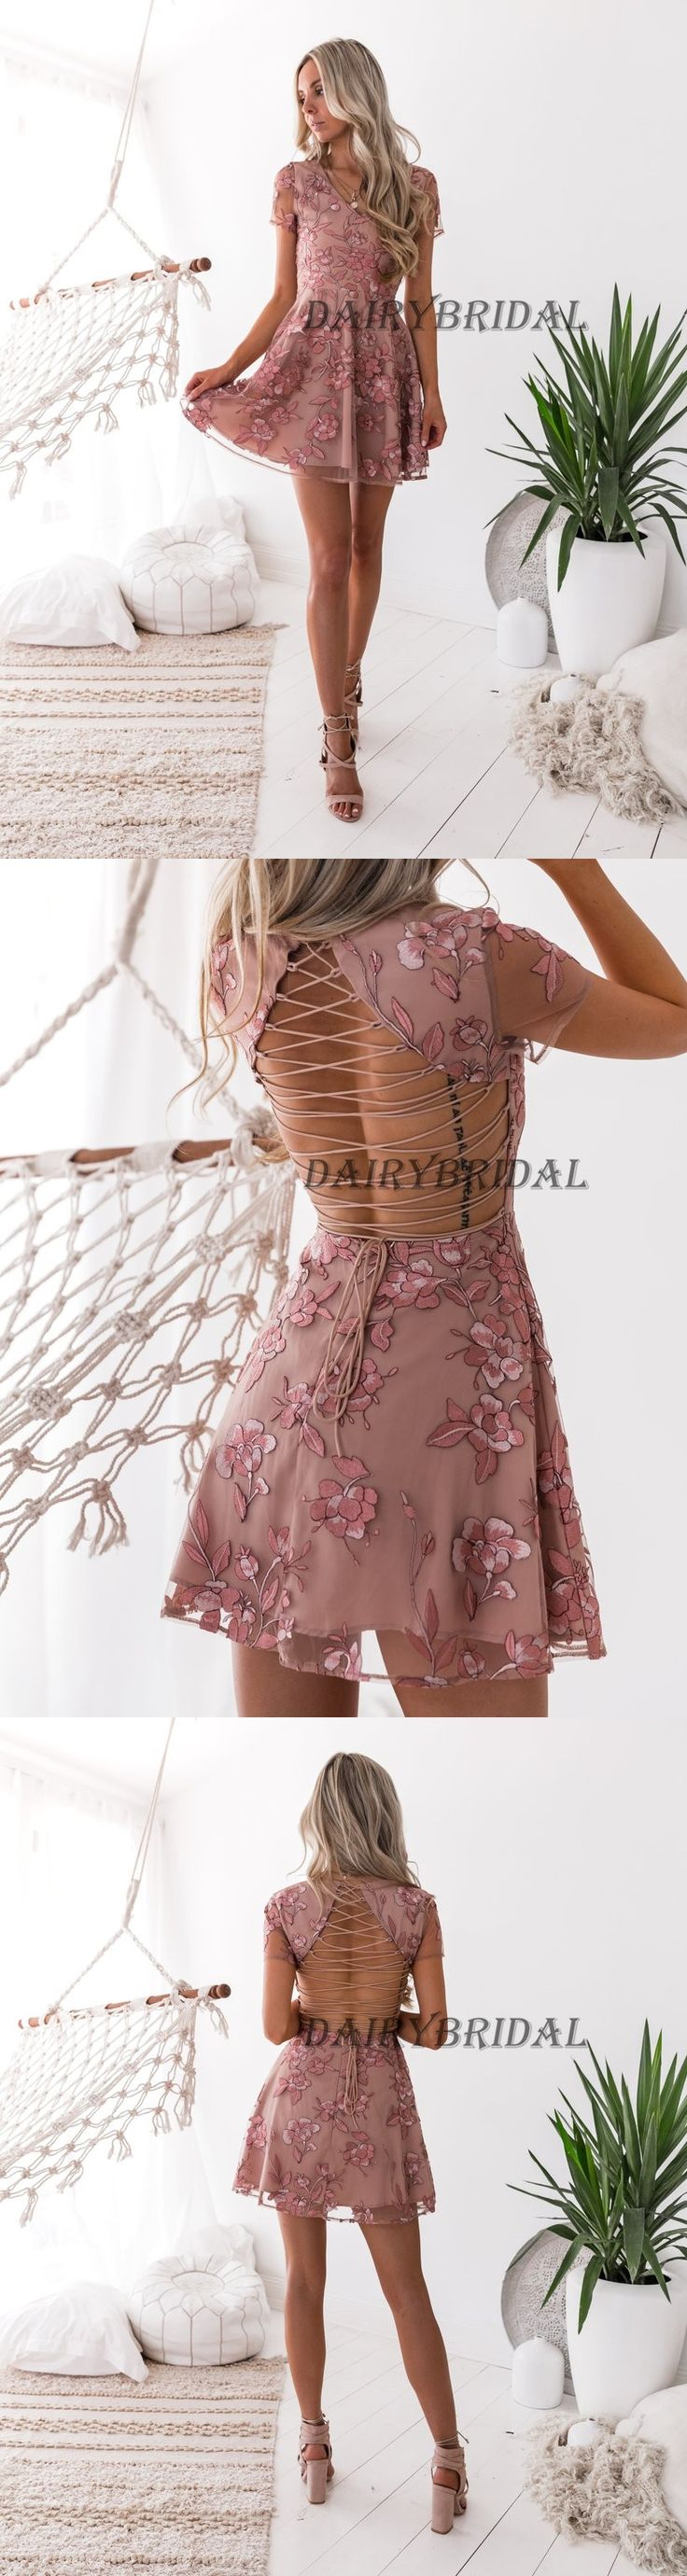 Tulle Homecoming Dress, Applique Homecoming Dress, Cross Back Homecoming Dress, Above-Knee Homecoming Dress, DA976 #dairybridal